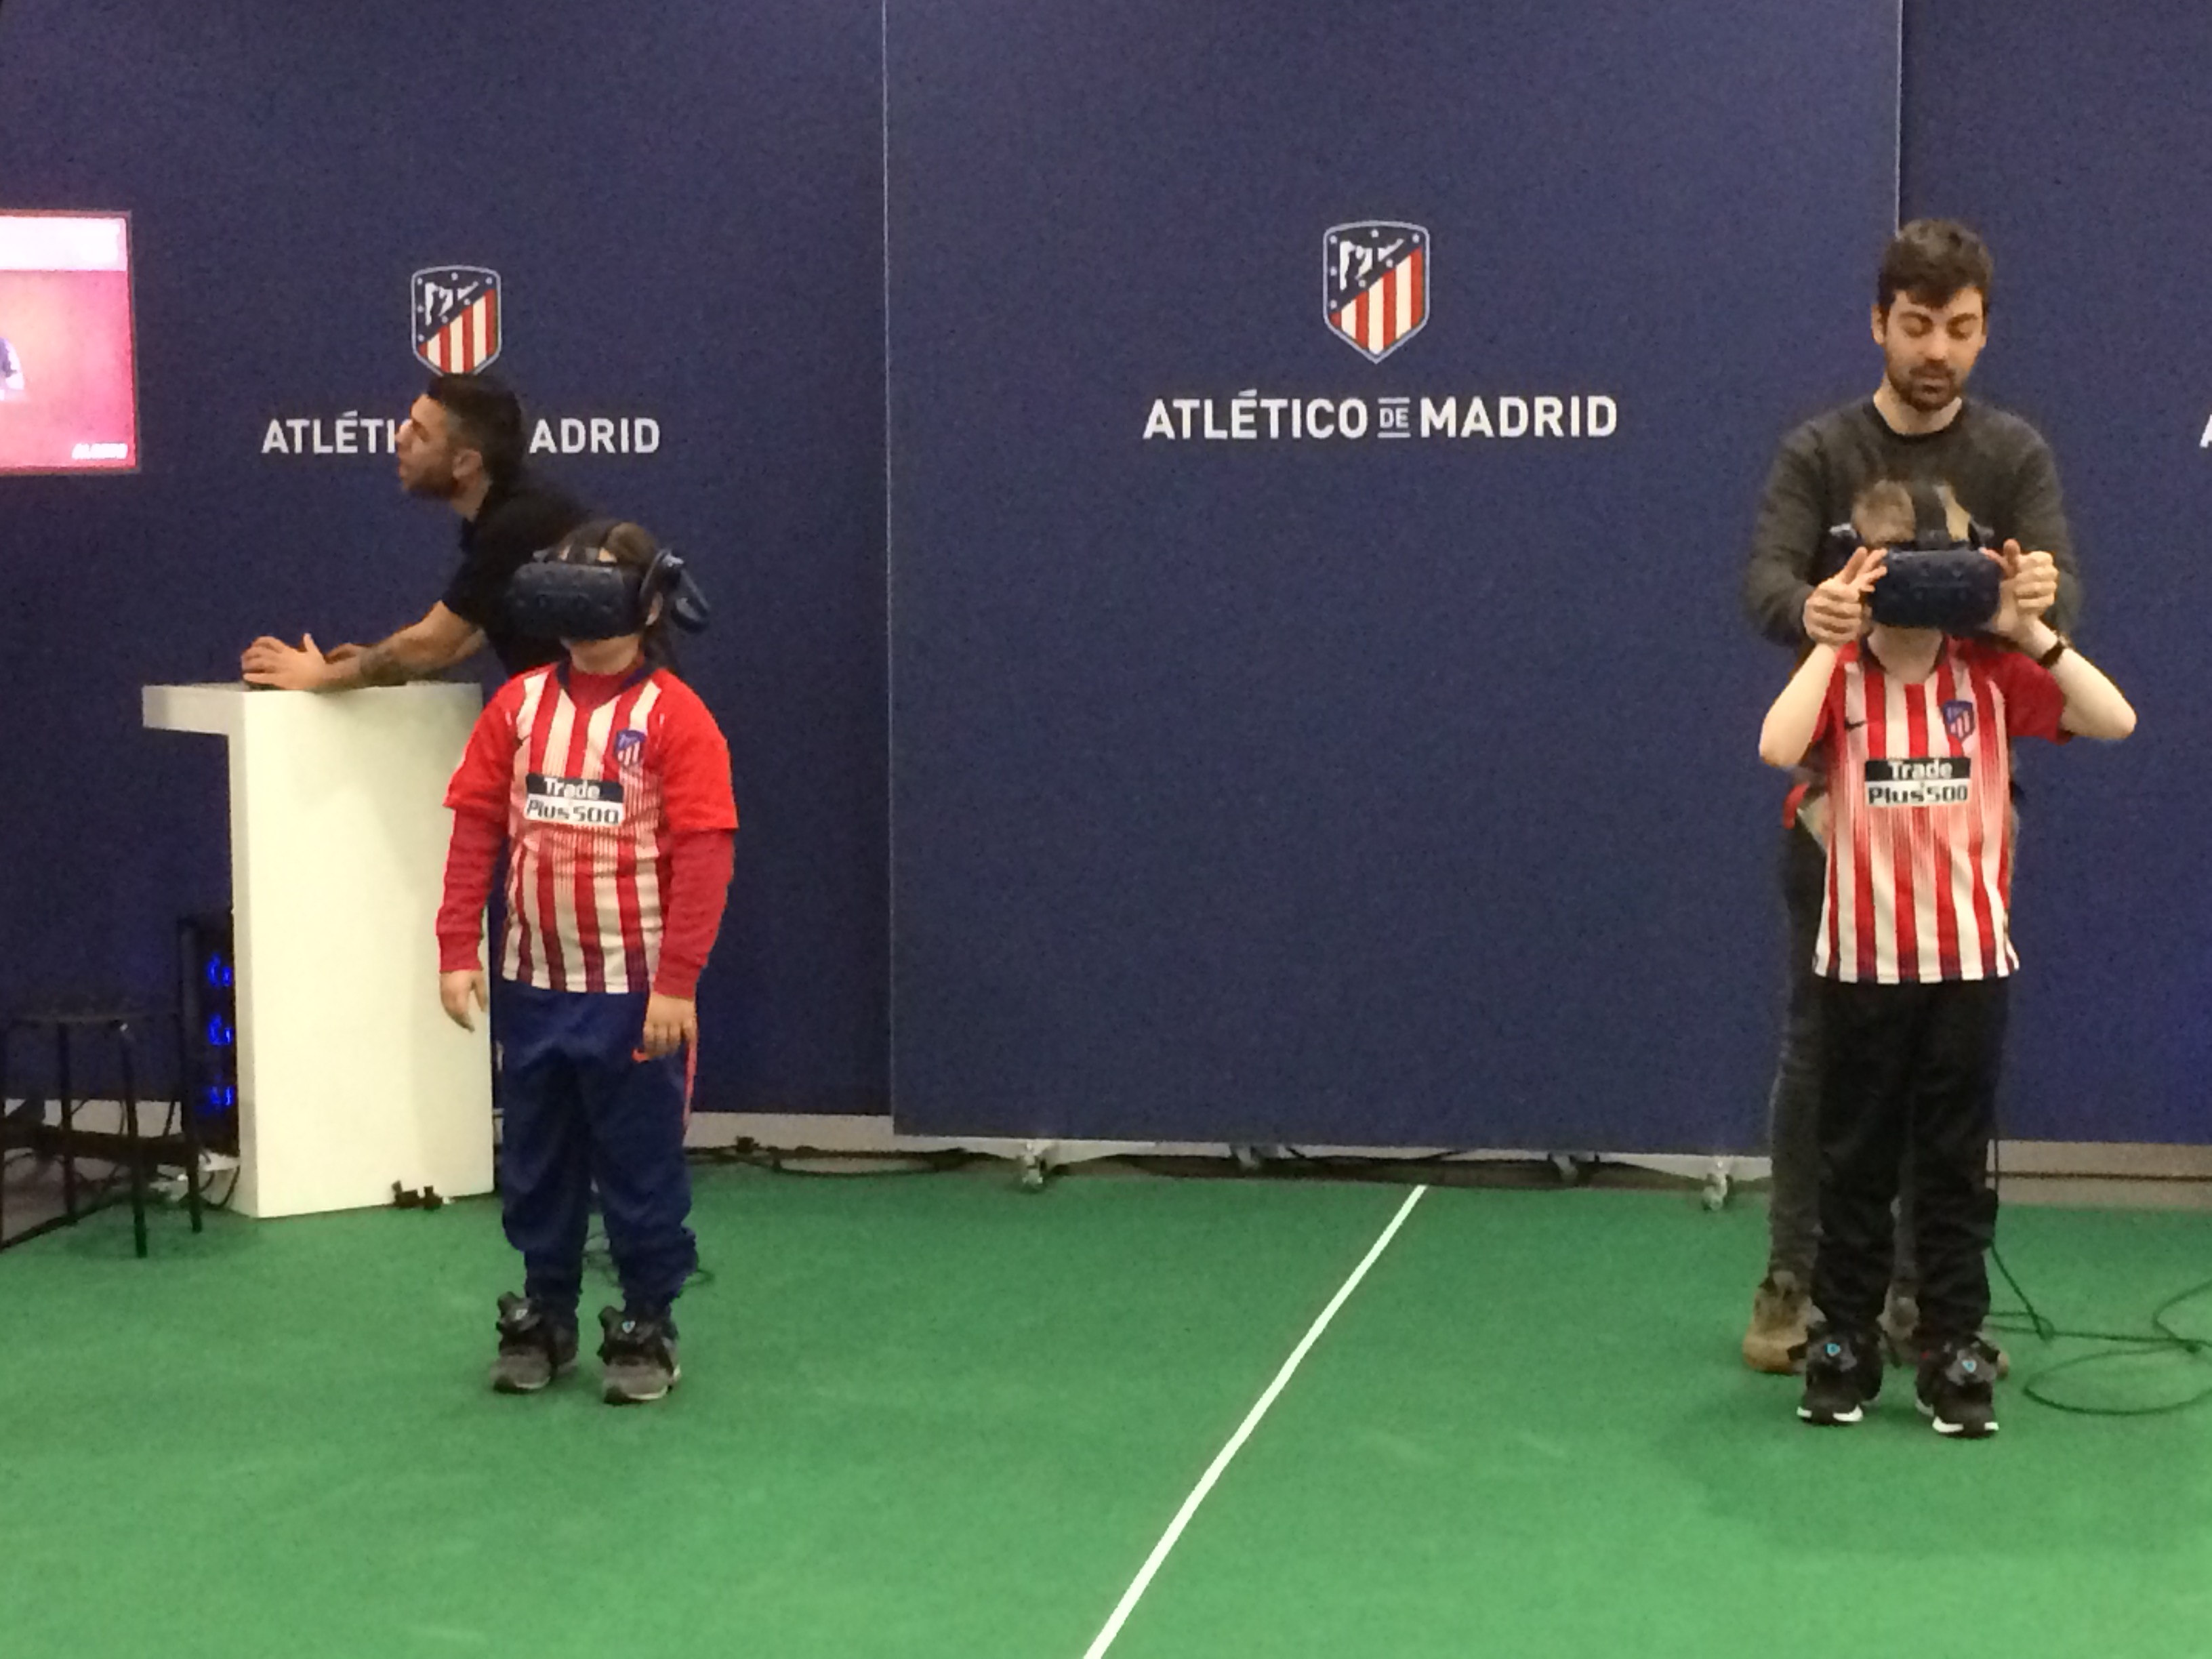 Atletico de Madrid VR Fan Experience